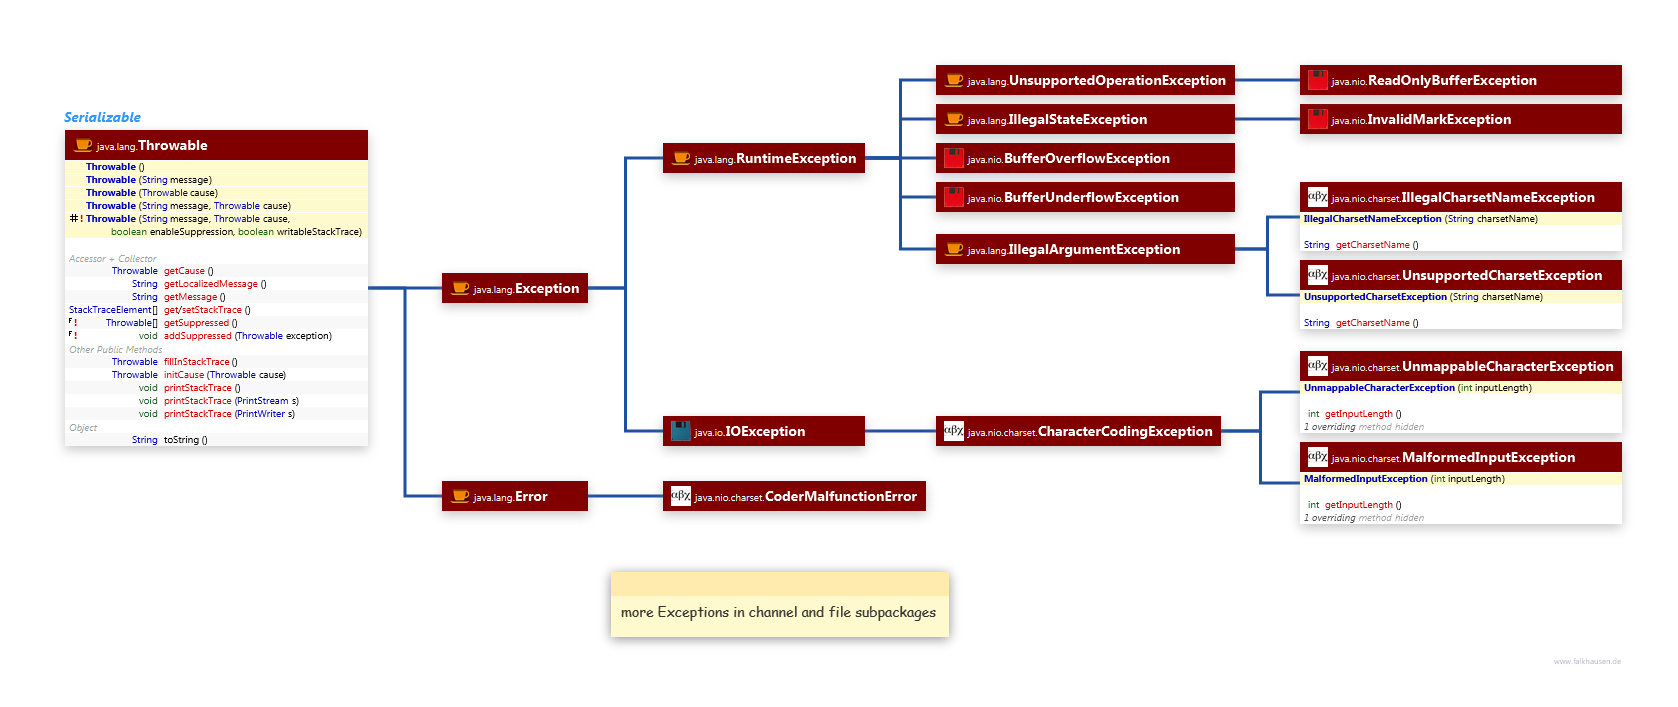 java.nio.channels Exceptions class diagram and api documentation for Java 7